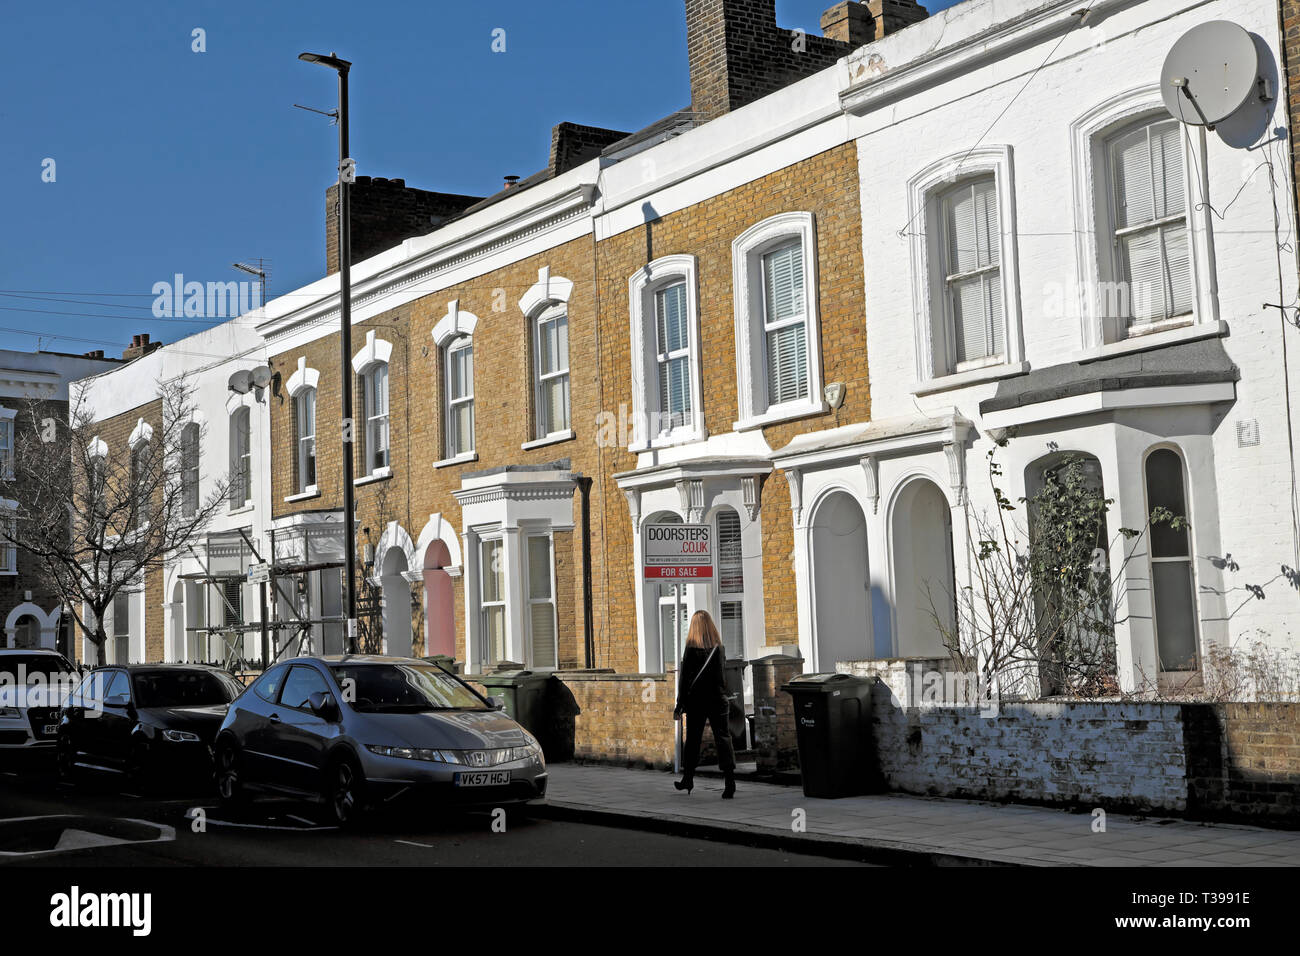 For sale sign outside a house in a row of terraced houses on Pulross Road in Brixton, South London SW9 England UK   KATHY DEWITT - Stock Image